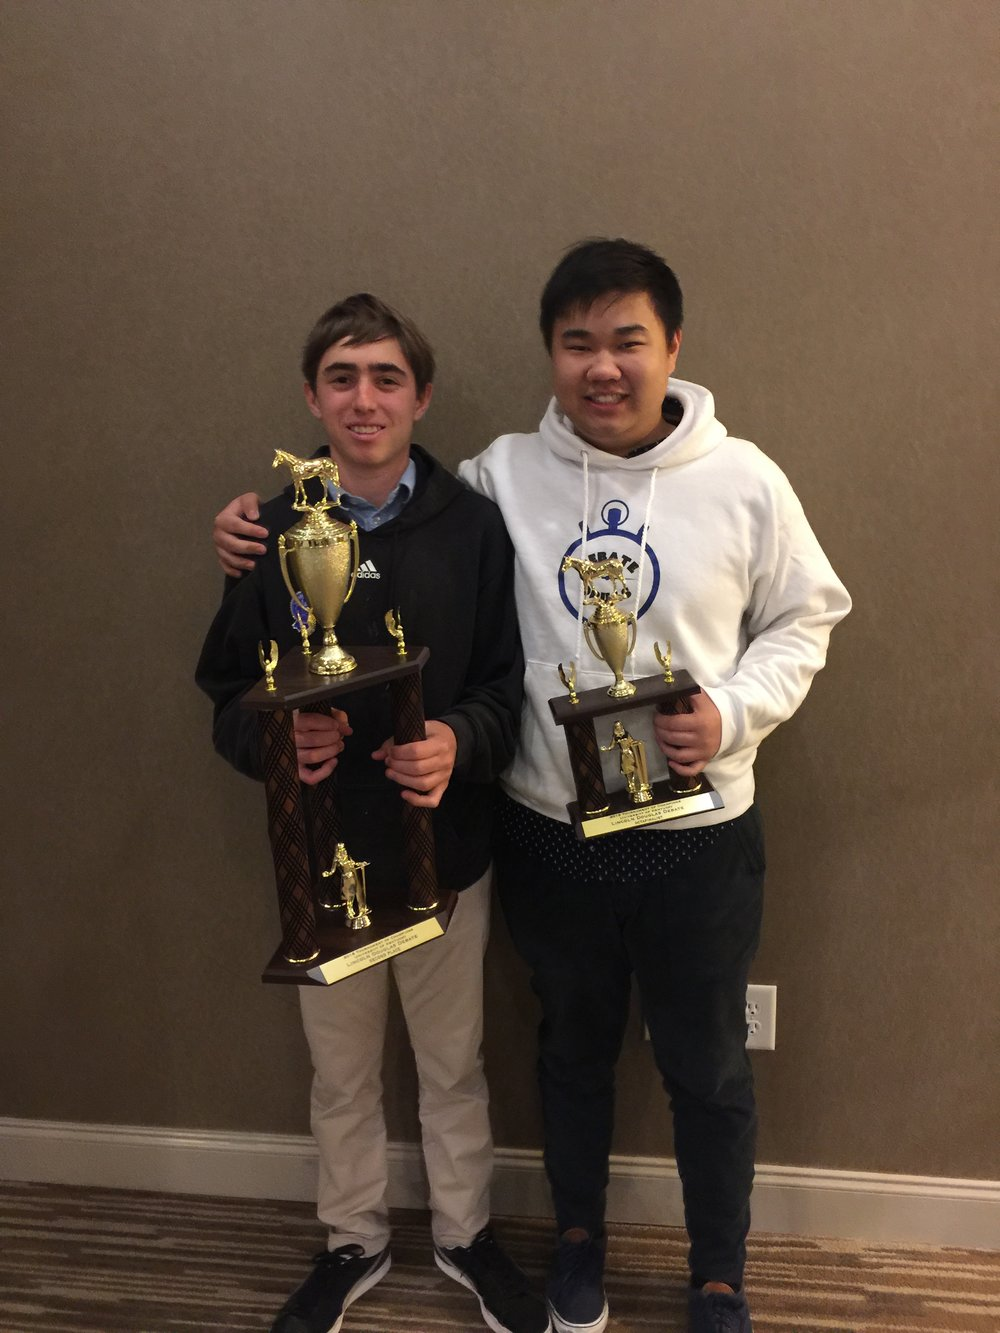 Debatedrills' students Rex Evans (Finalist) and Eric Deng (Octofinalist) celebrate a successful 2018 TOC.